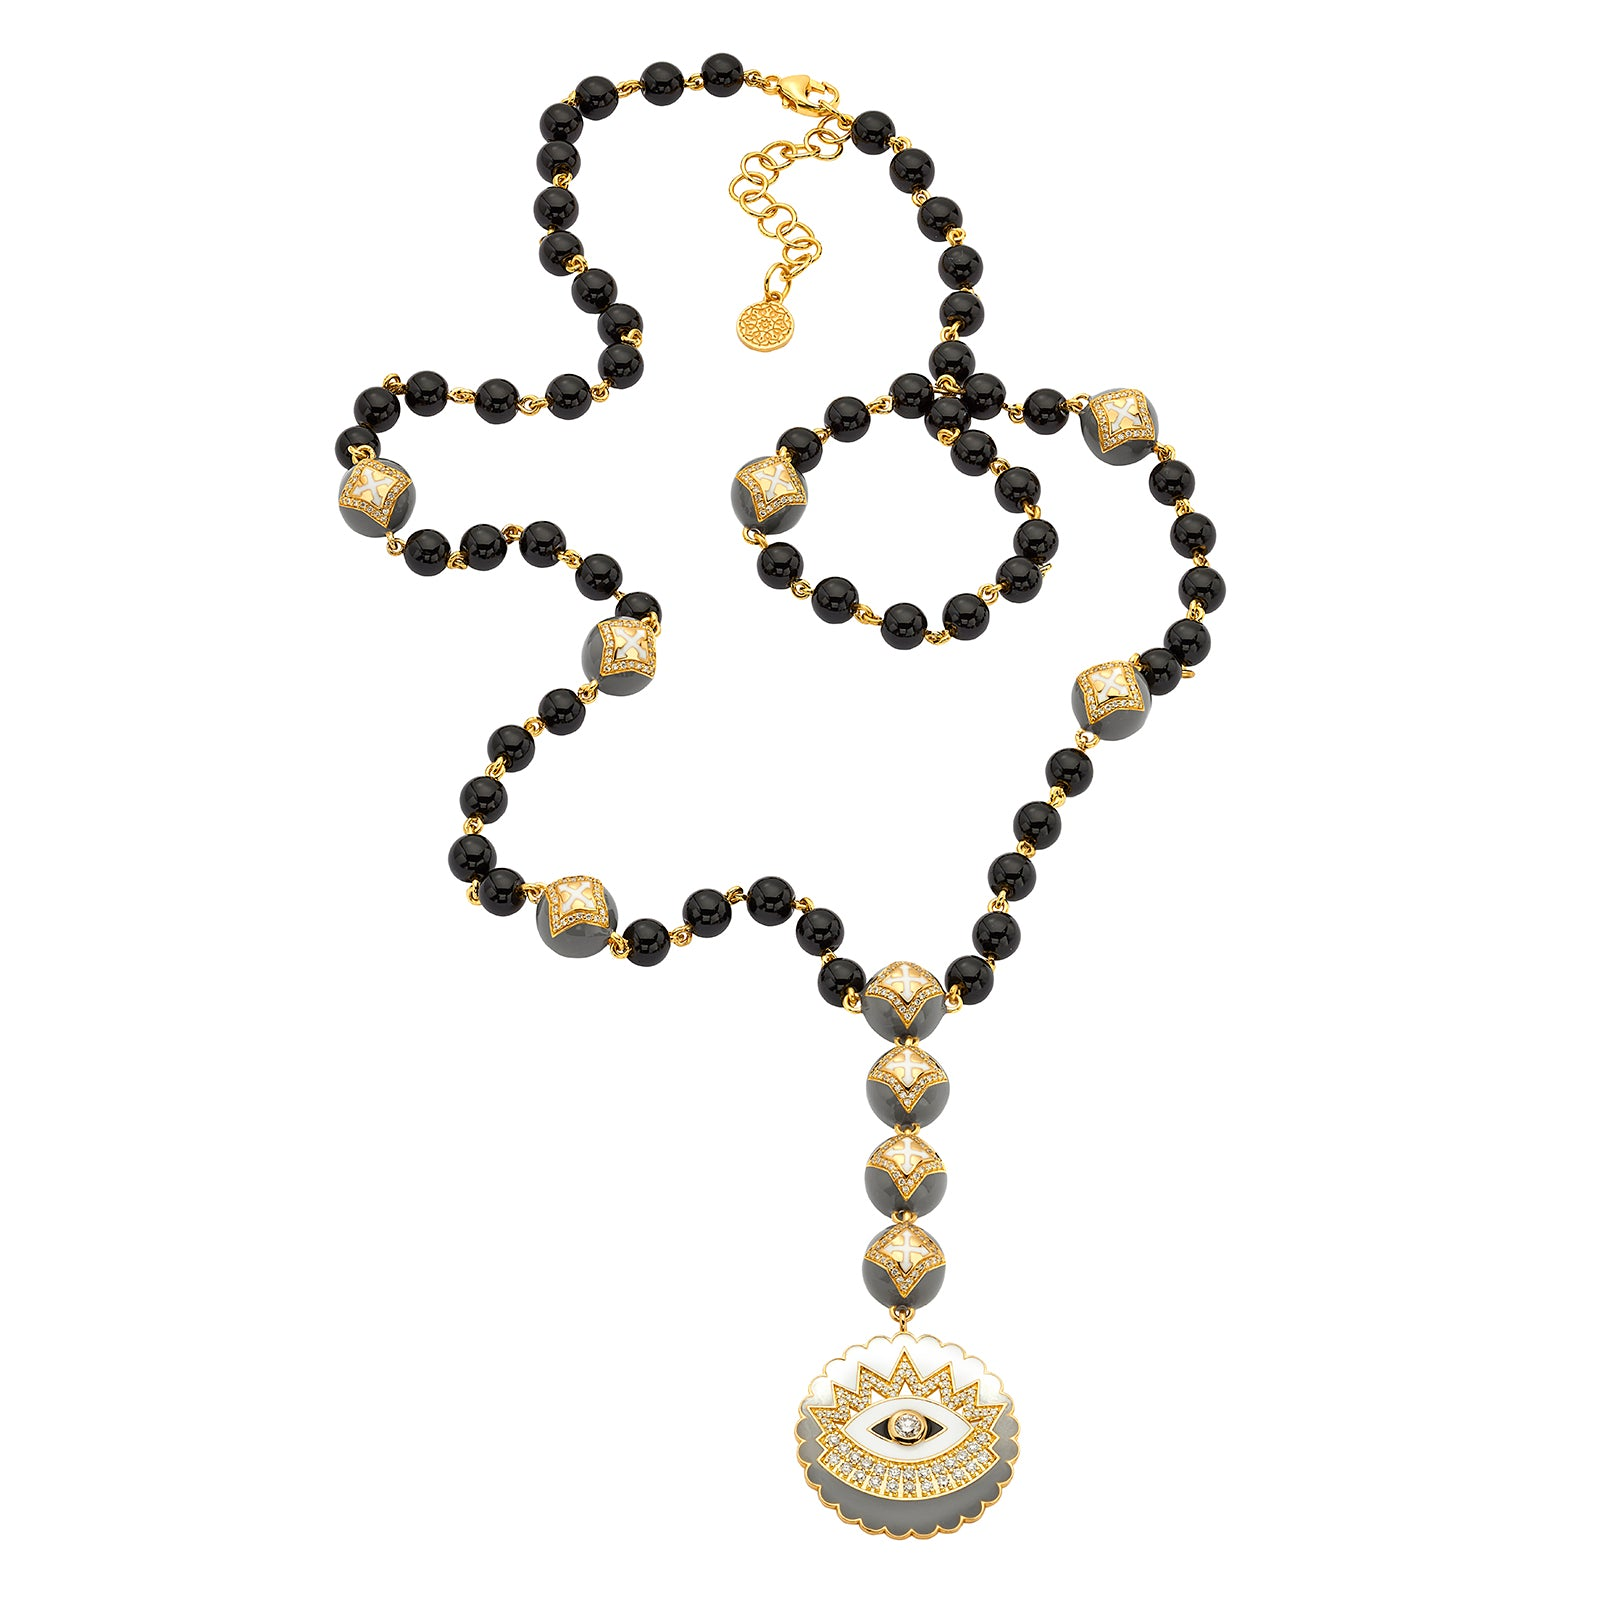 Buddha Mama Rosary Necklace - Black Onyx - Necklaces - Broken English Jewelry